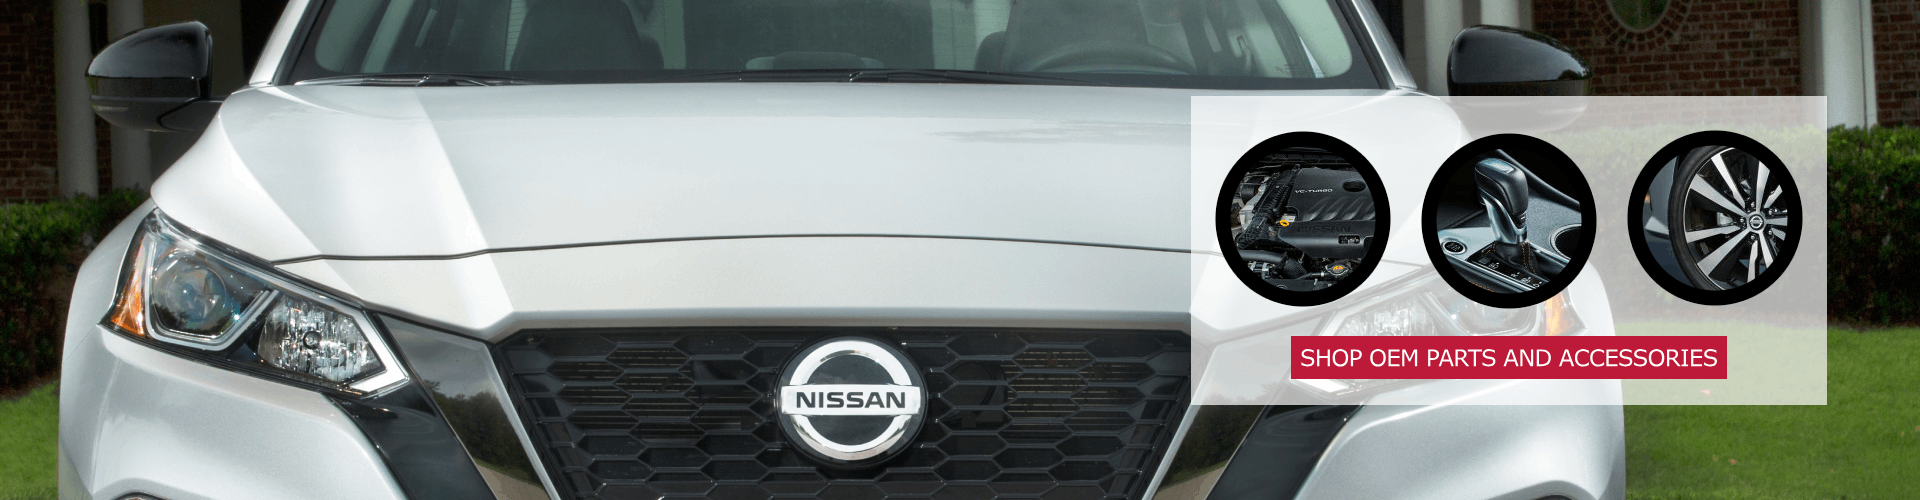 OEM Nissan parts and accessories